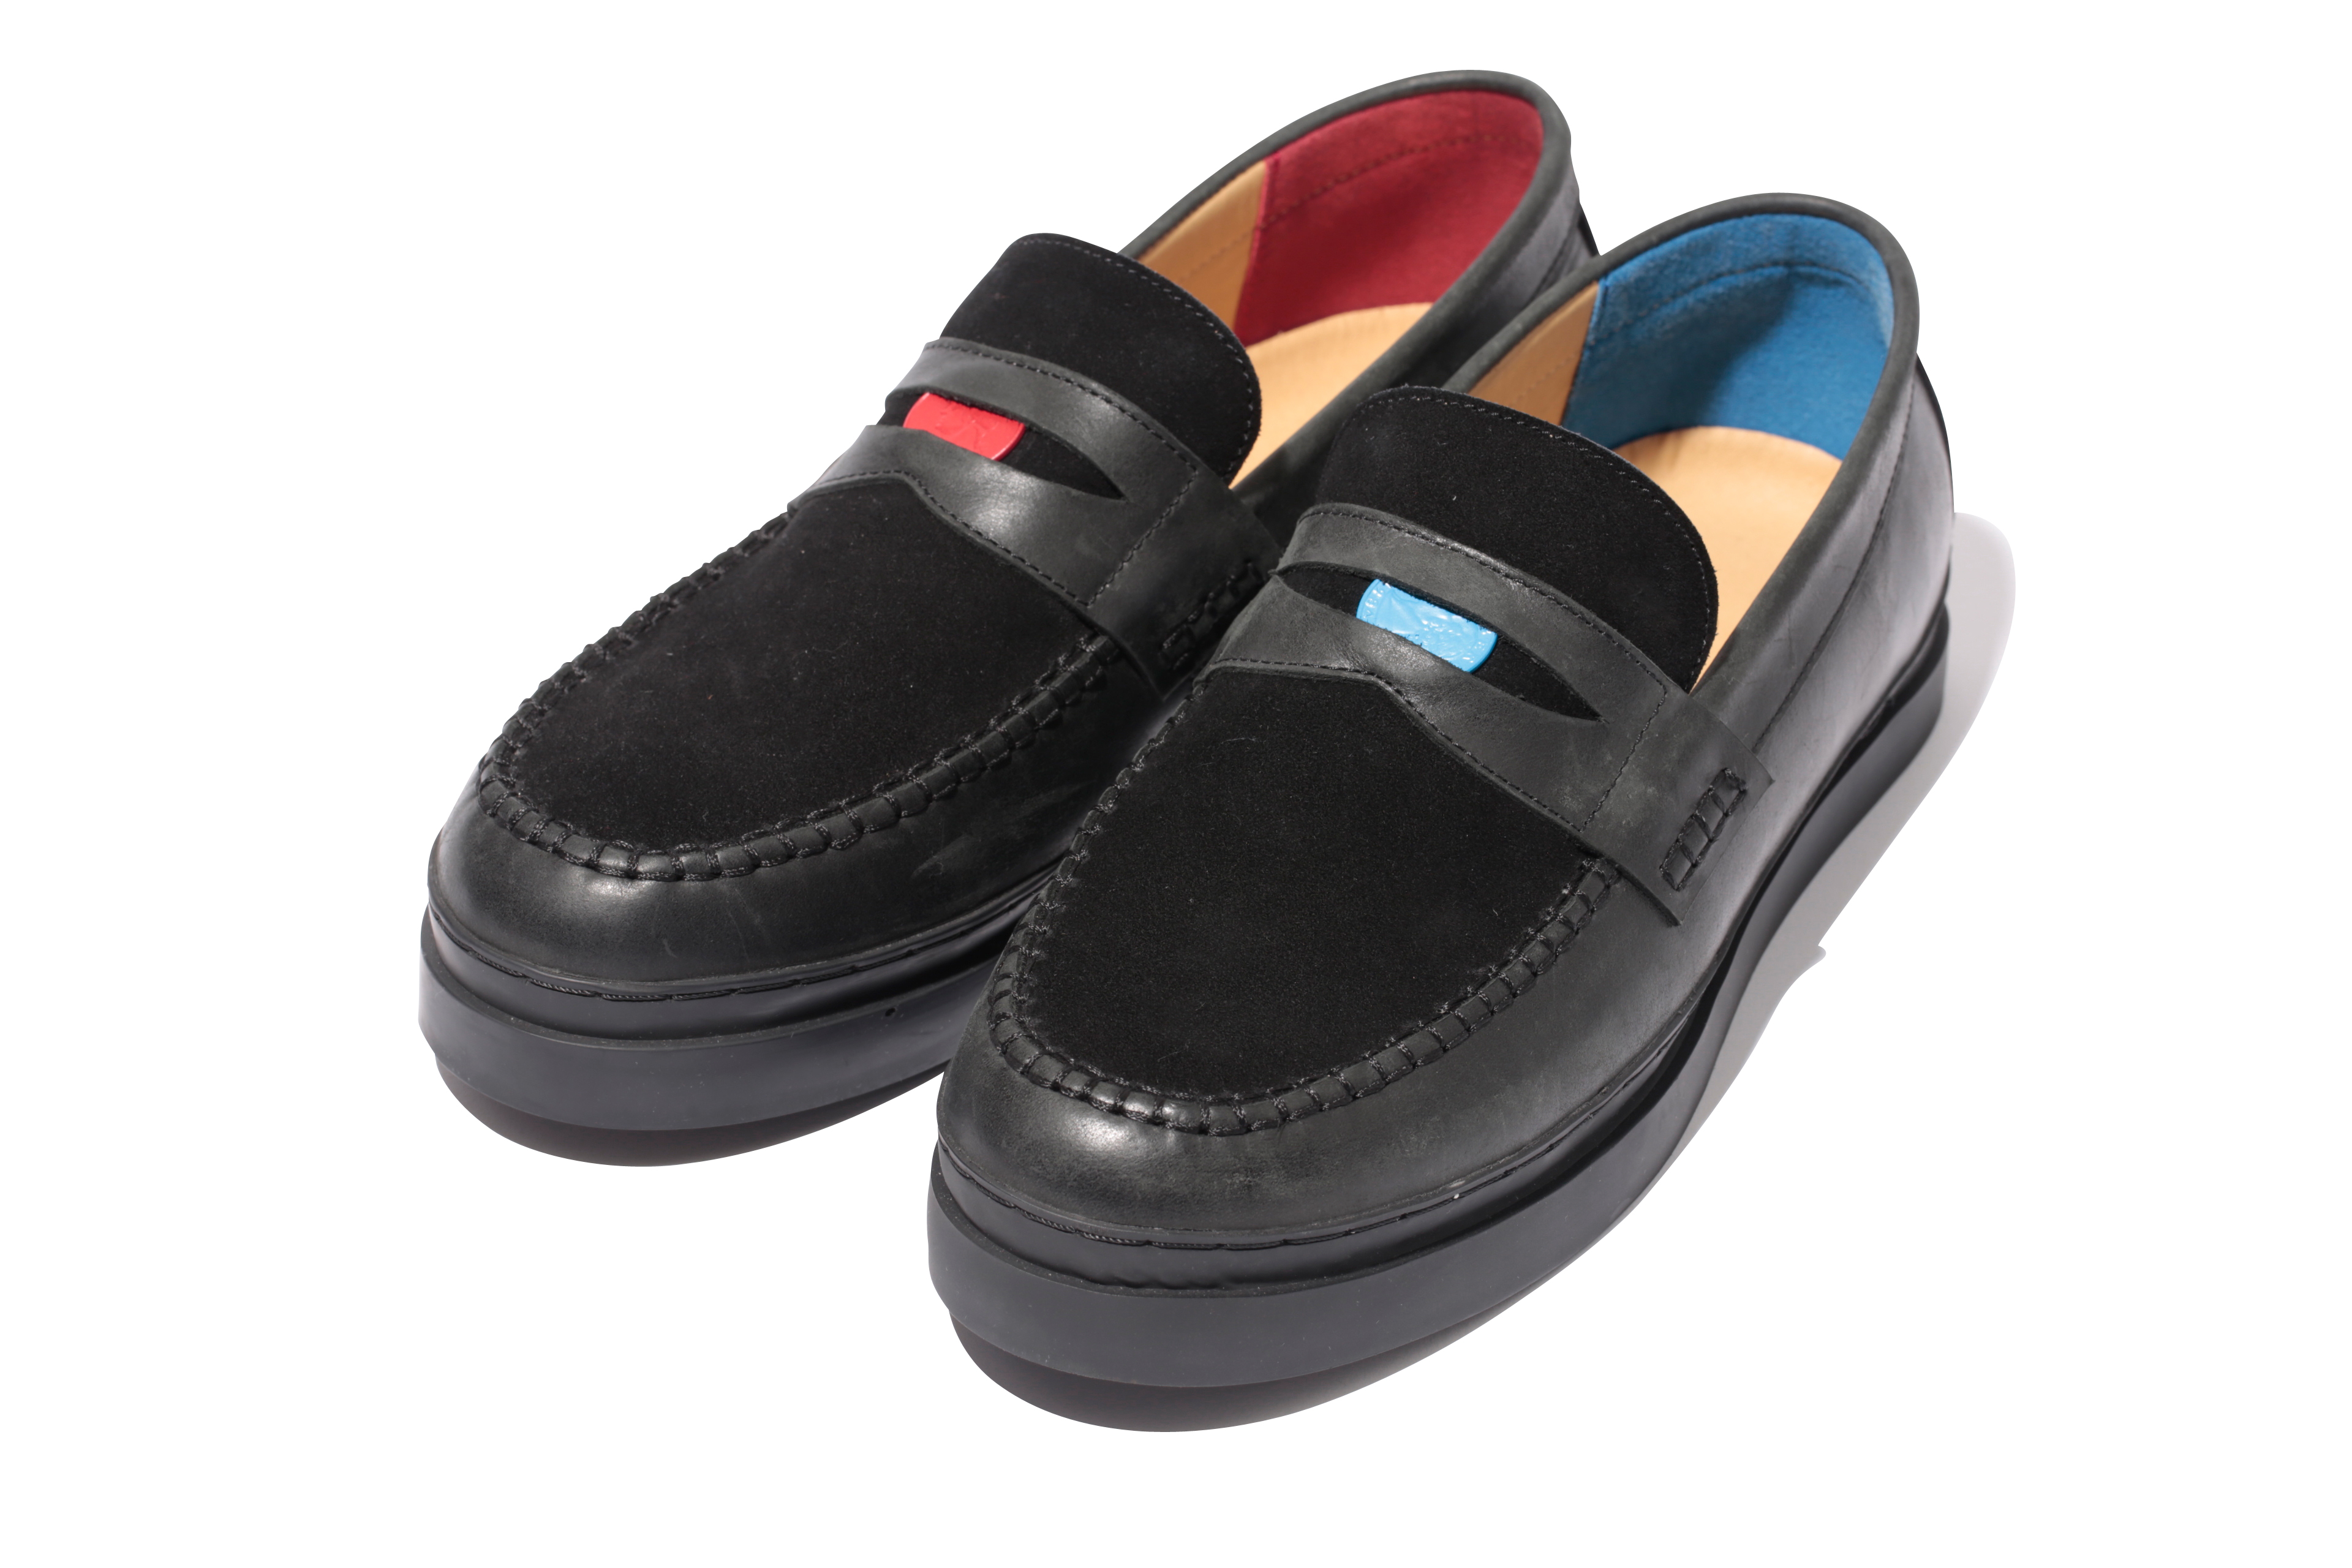 COIN RATIONA  ORPHIC × SWBP - BLACK